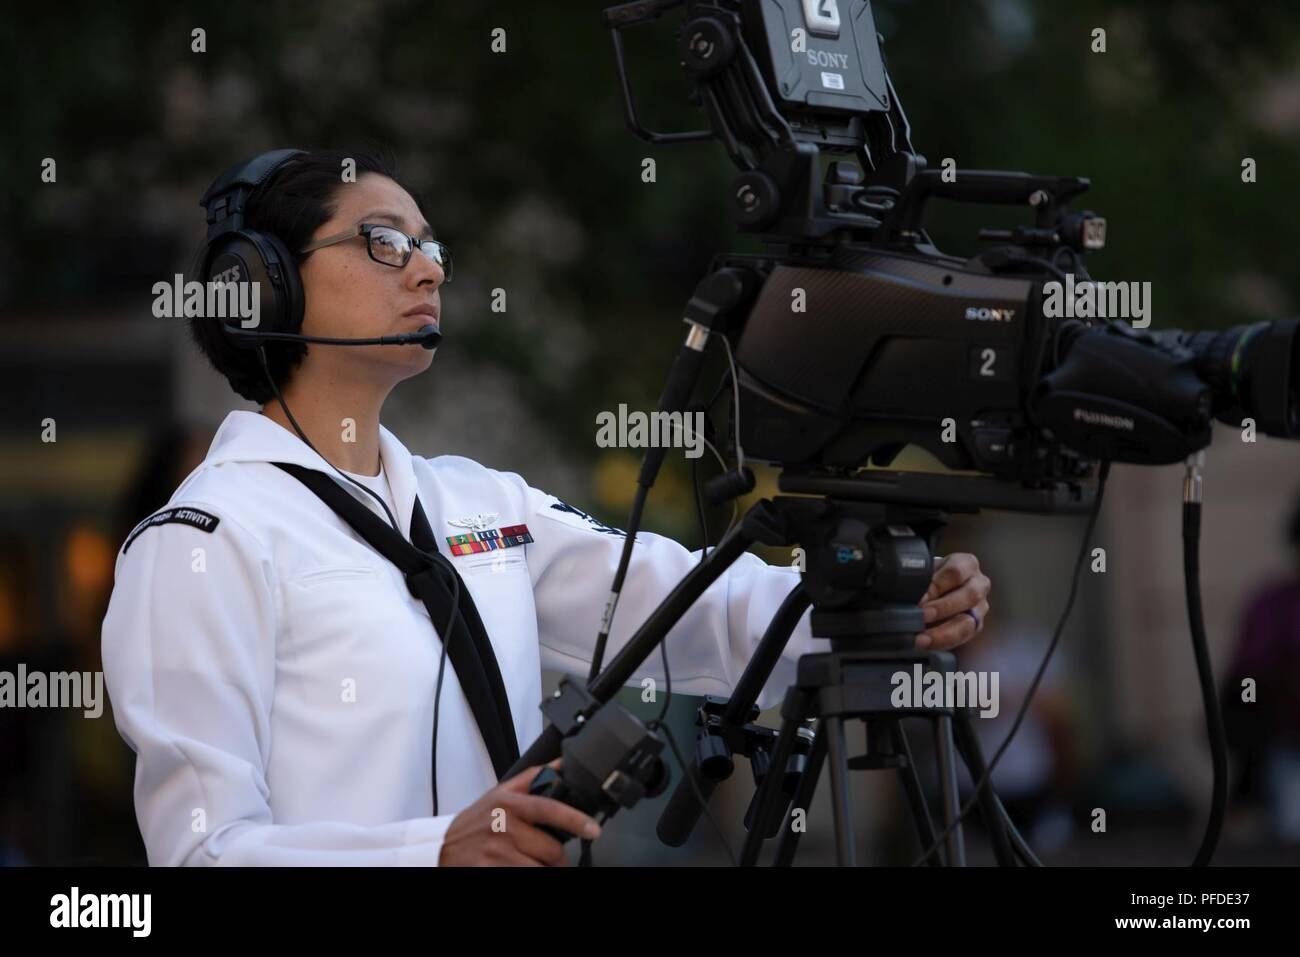 WASHINGTON (June 5, 2018) Mass Communications Specalist 2nd Class Anita Newman videotapes the commemoration of the 76th anniversary of the Battle of Midway at the U.S. Navy Memorial in Washington, D.C. The Battle of Midway stands as one of the U.S. Navy's most historically significant naval battles. Fought on the high seas of the Pacific more than half a century ago, this battle altered the course of the war in the Pacific and thereby shaped the outcome of world events. - Stock Image